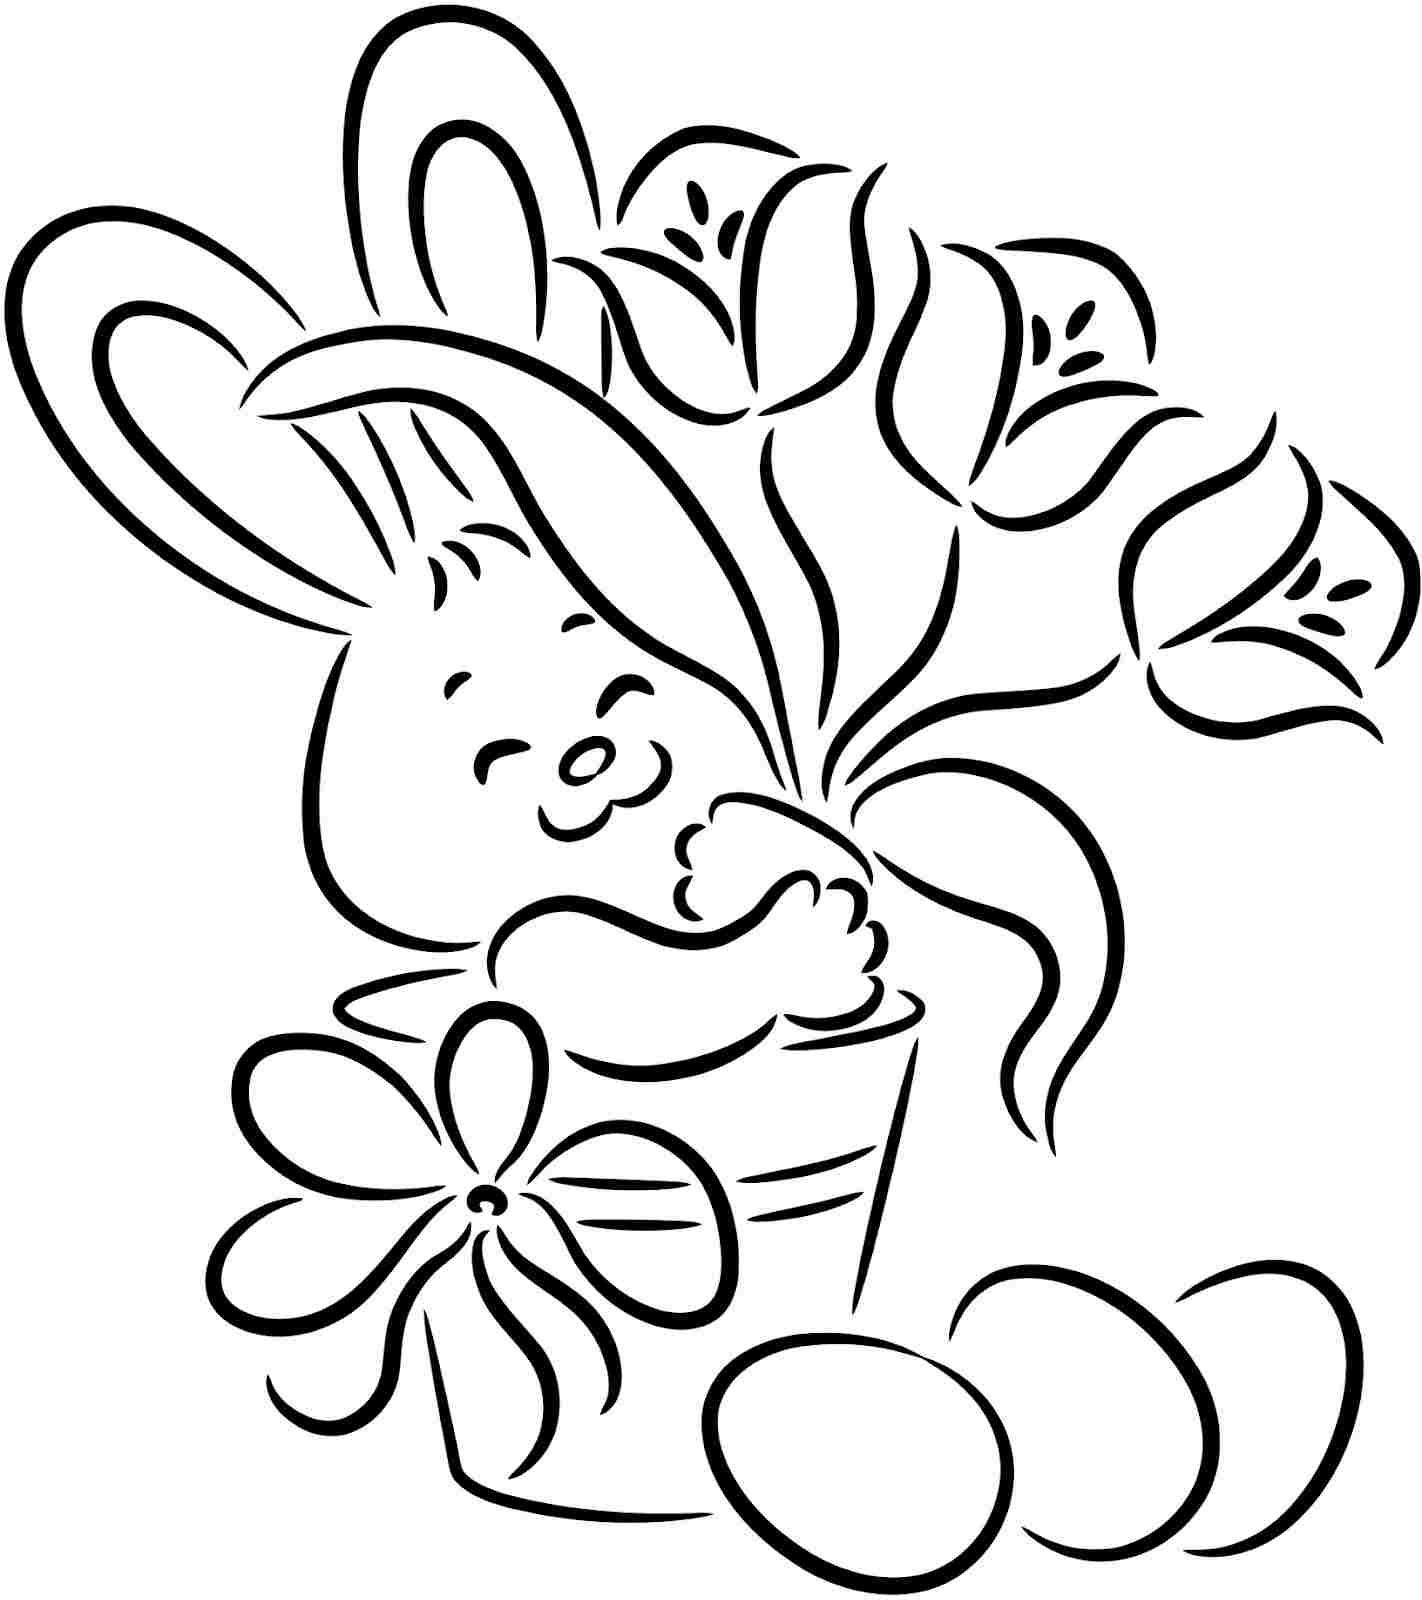 1422x1600 Simple Easter Bunny Drawing Easy Bunny Drawings For Kids Easter